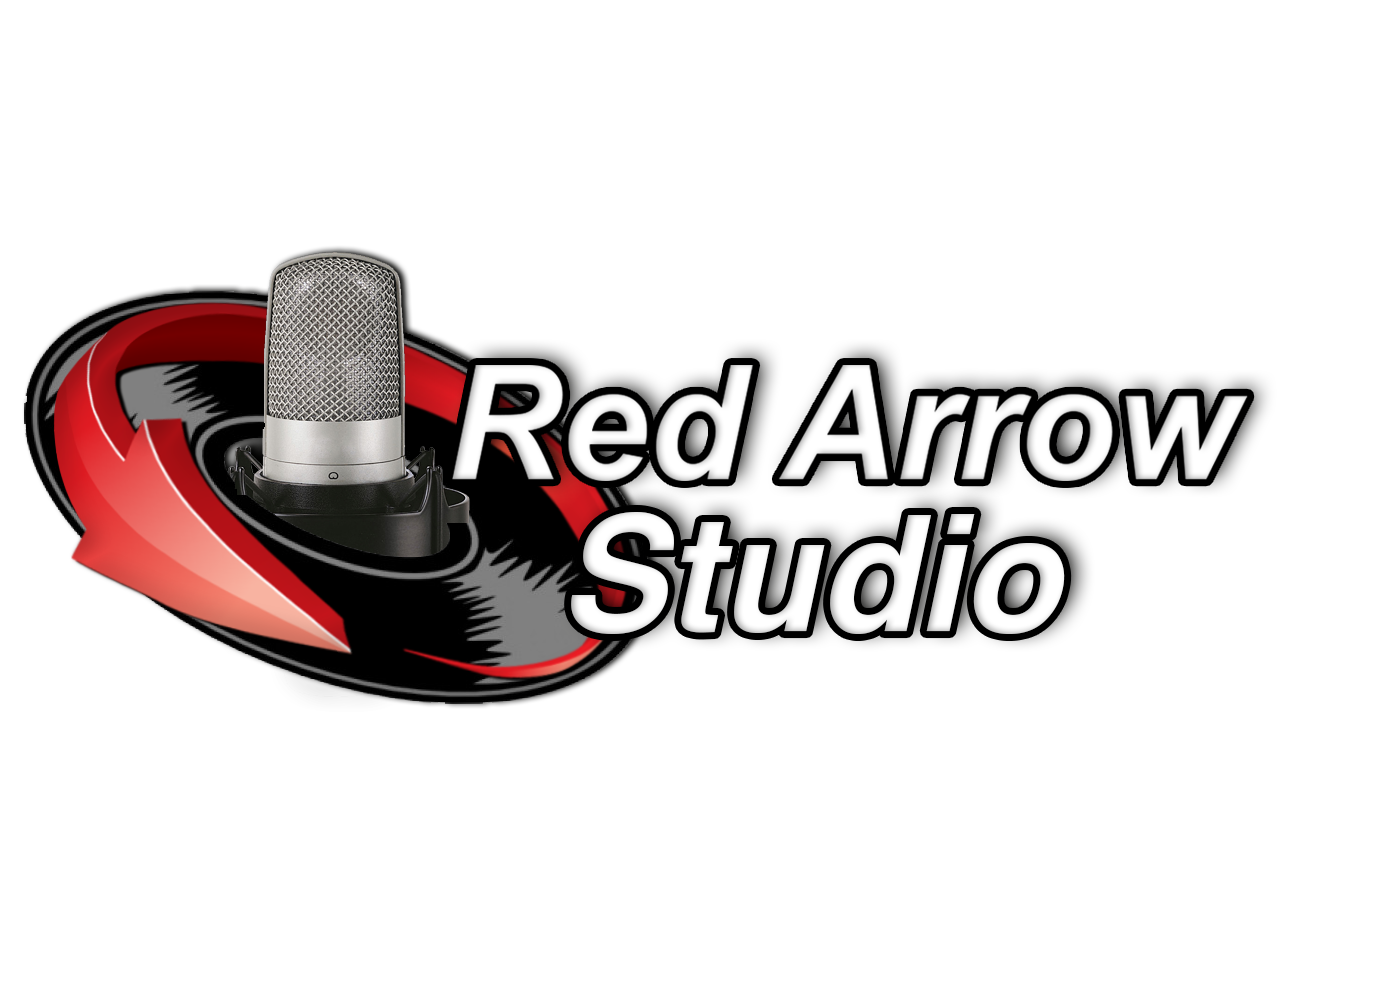 Red Arrow Studio